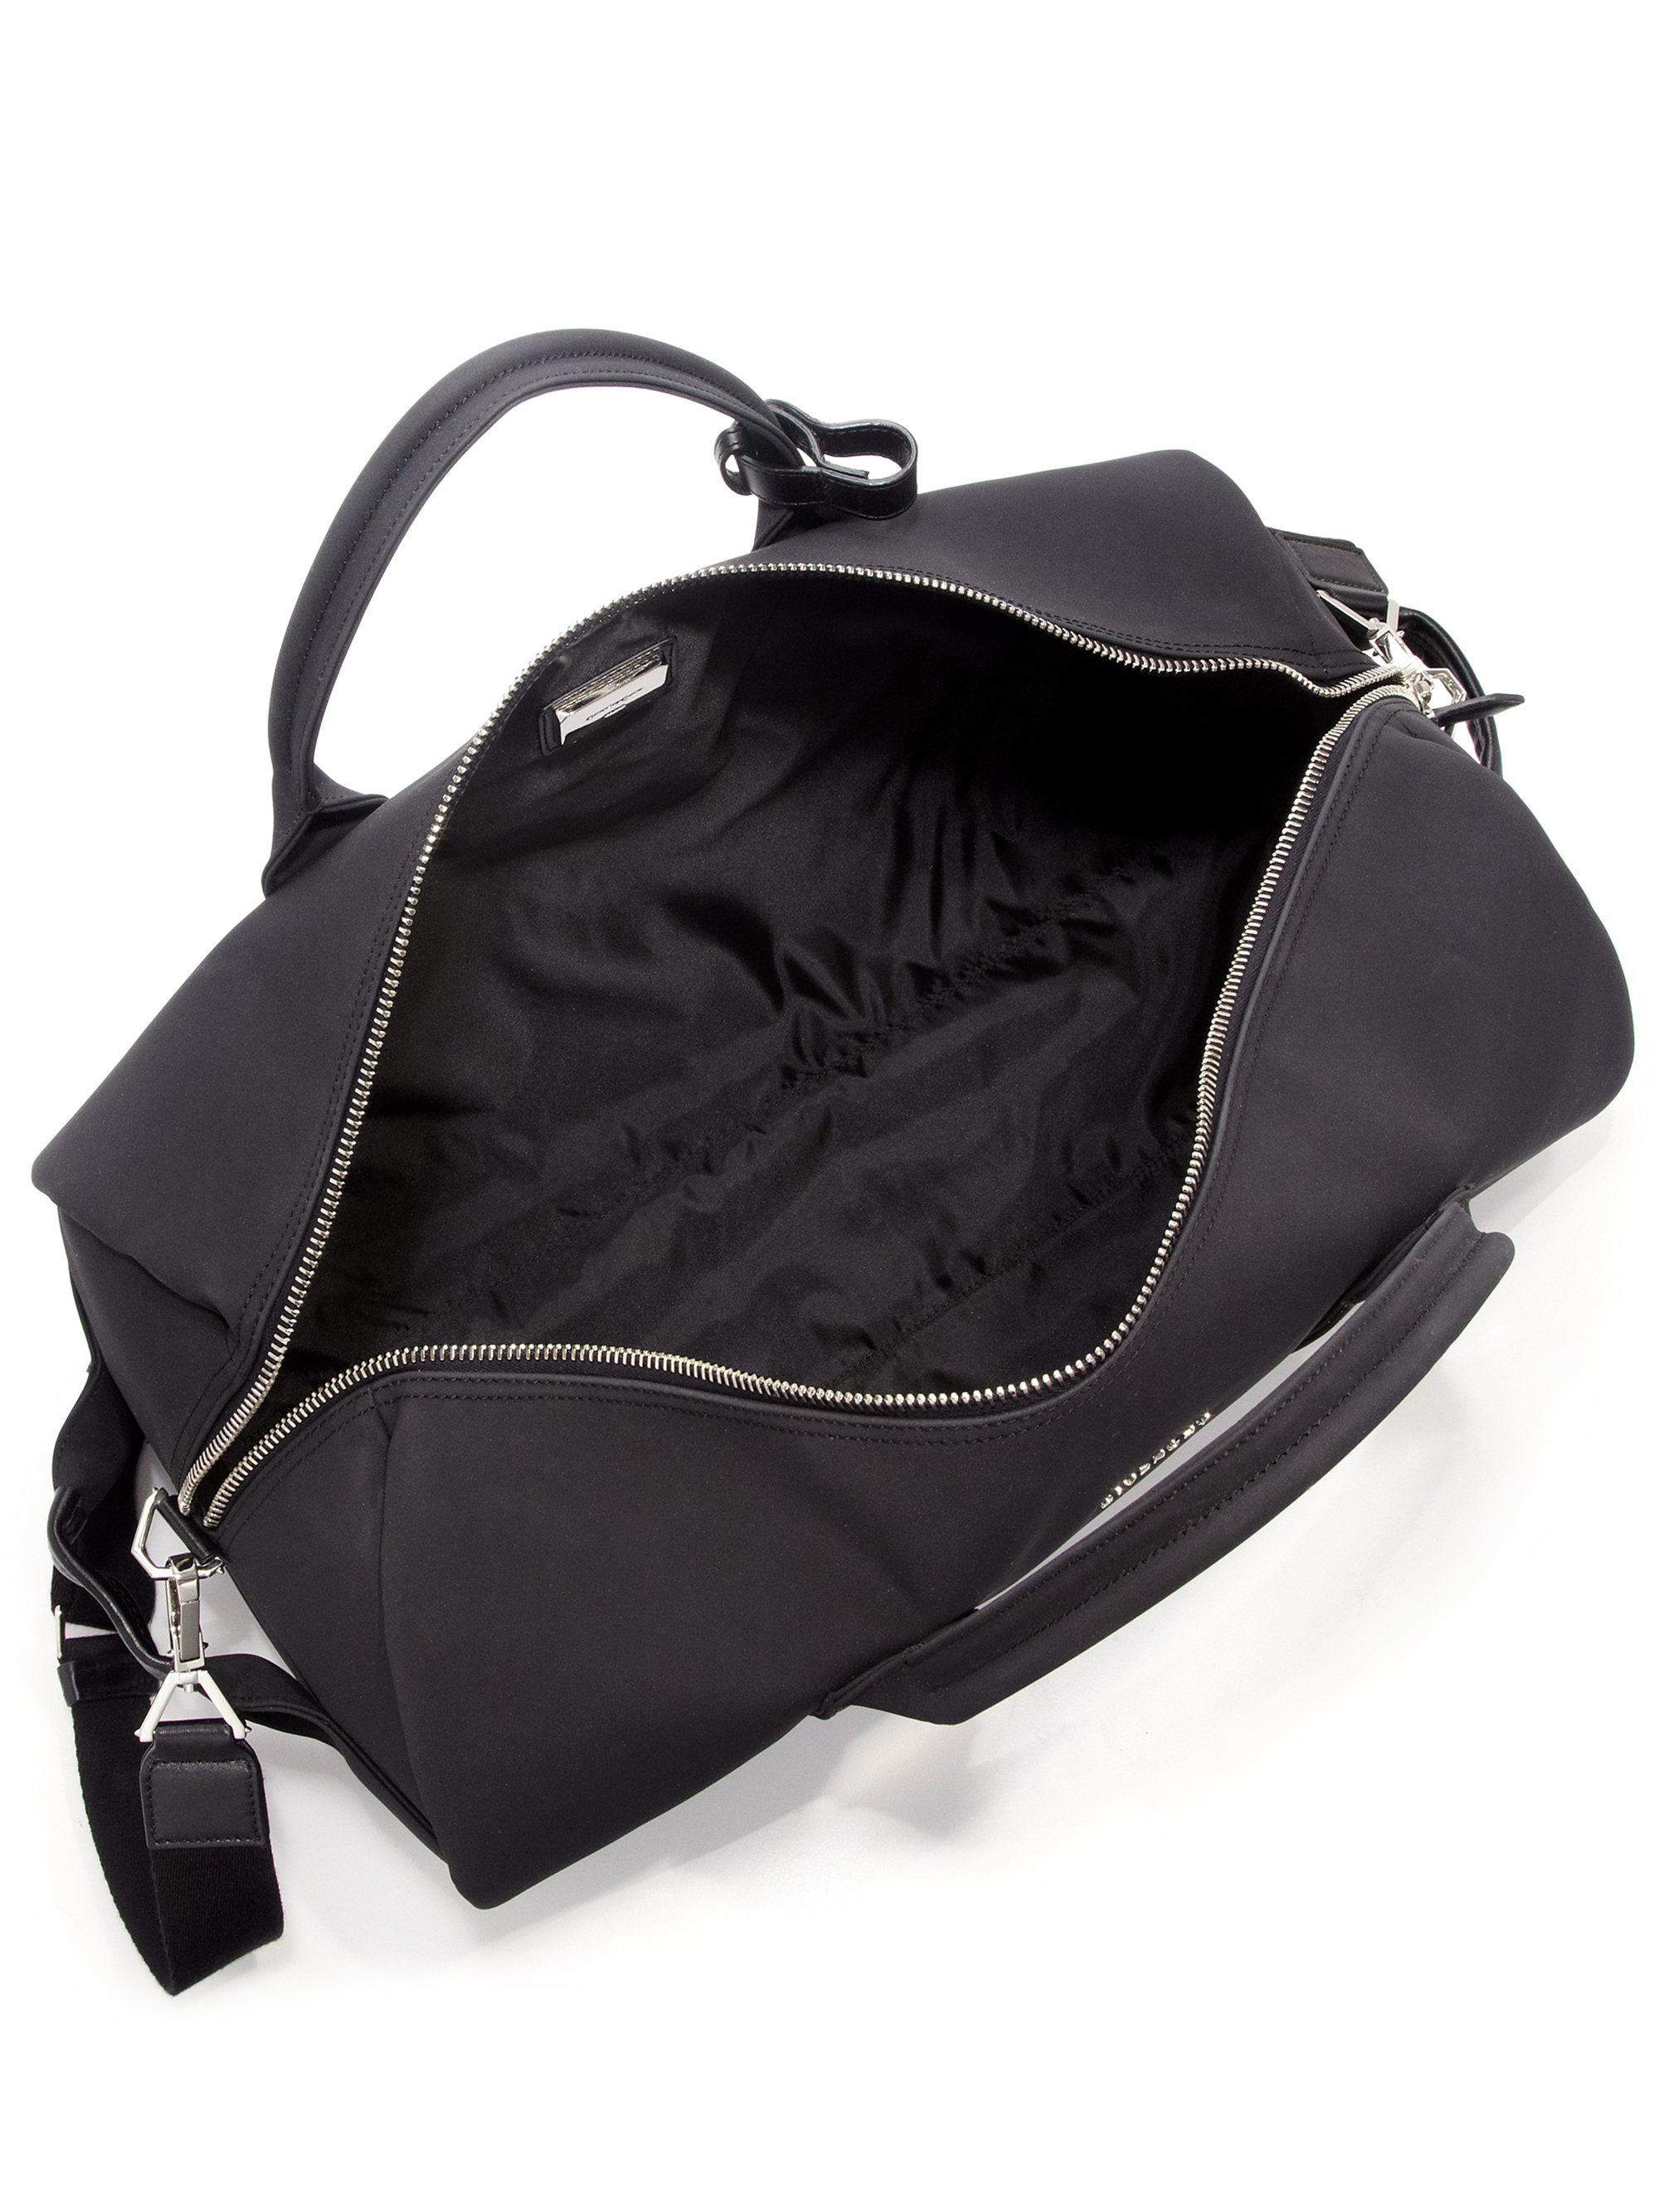 1ce6f4414831 Lyst - Givenchy Items Gym Bag in Black for Men